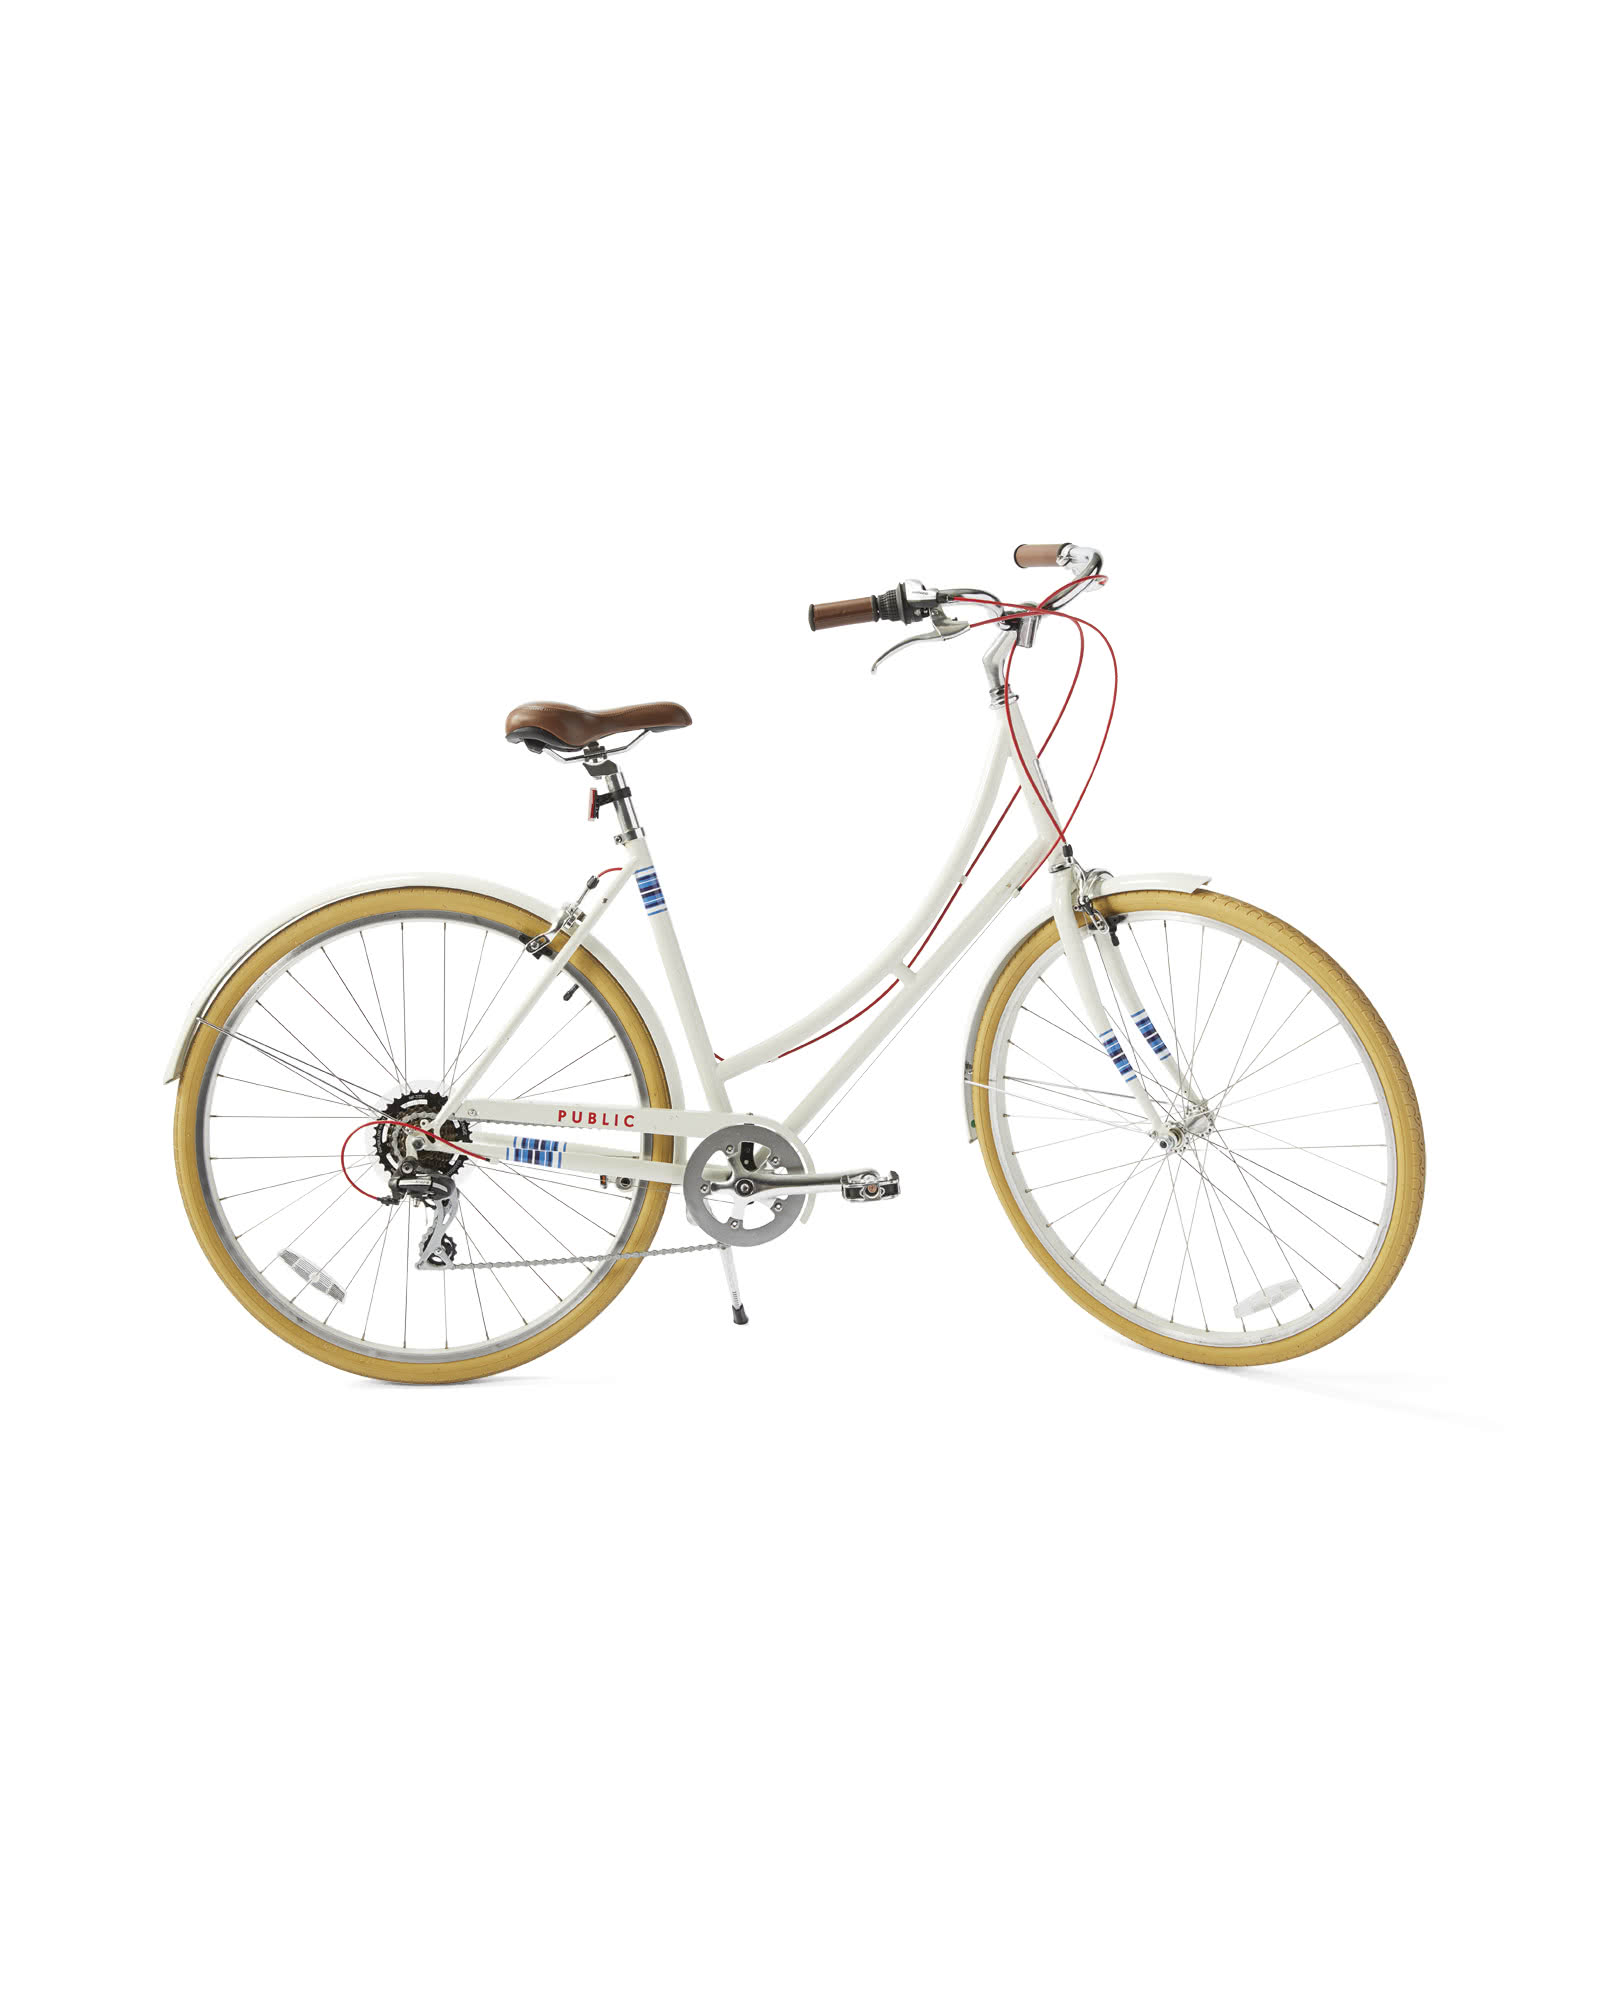 Limited-Edition PUBLIC® C7 Bike, White